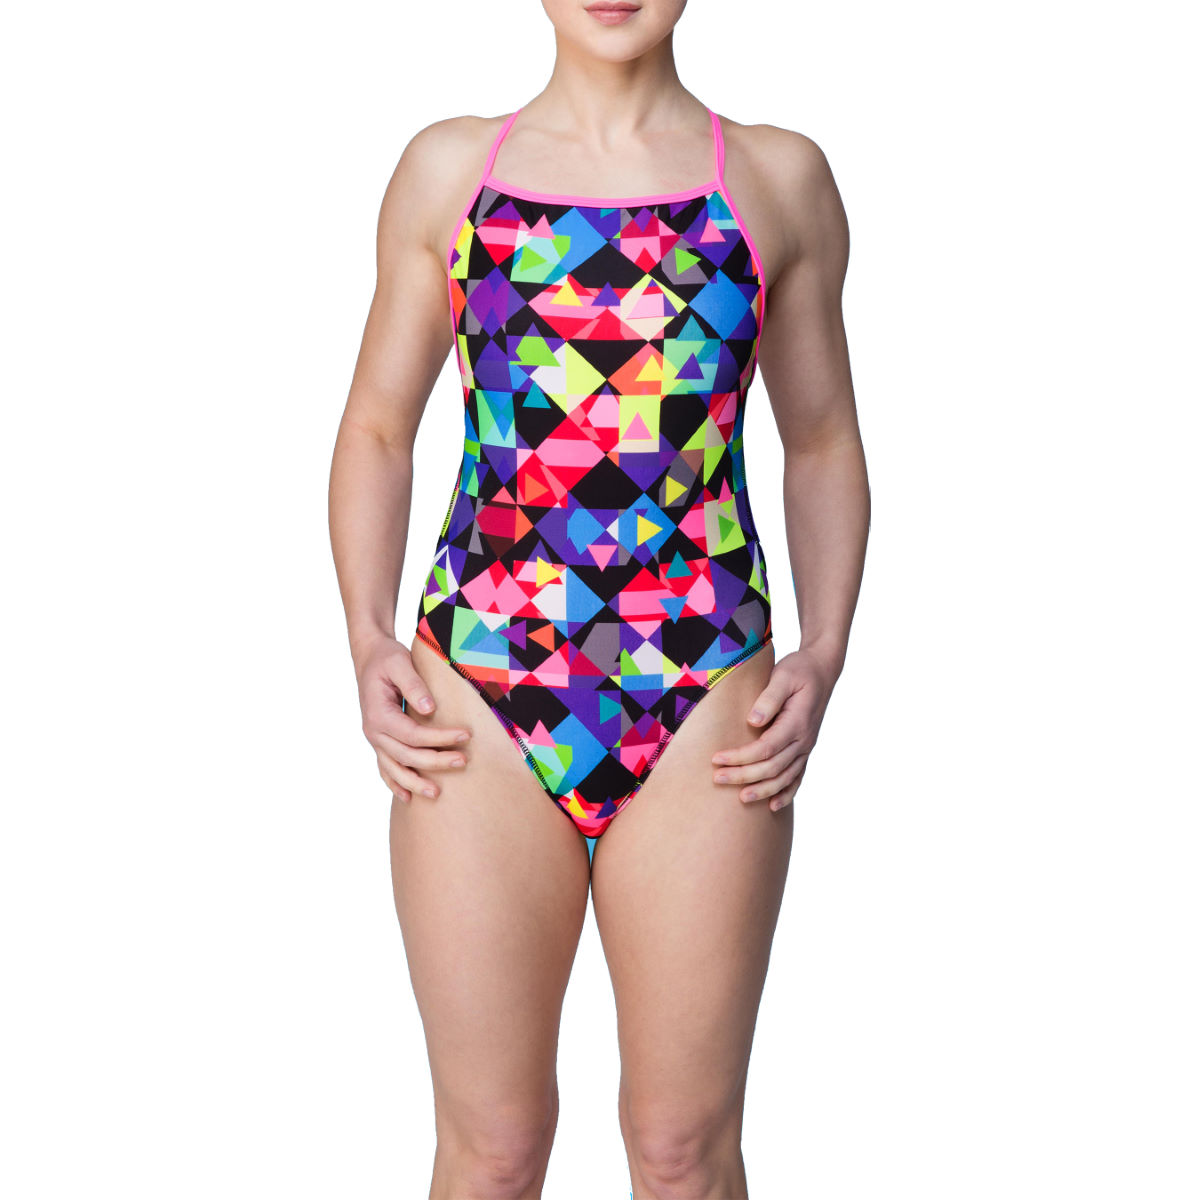 Maillot de bain Femme Maru Checker Magic Pacer (dos Vision, AH16) - 30'' Multi Maillots de bain Adulte